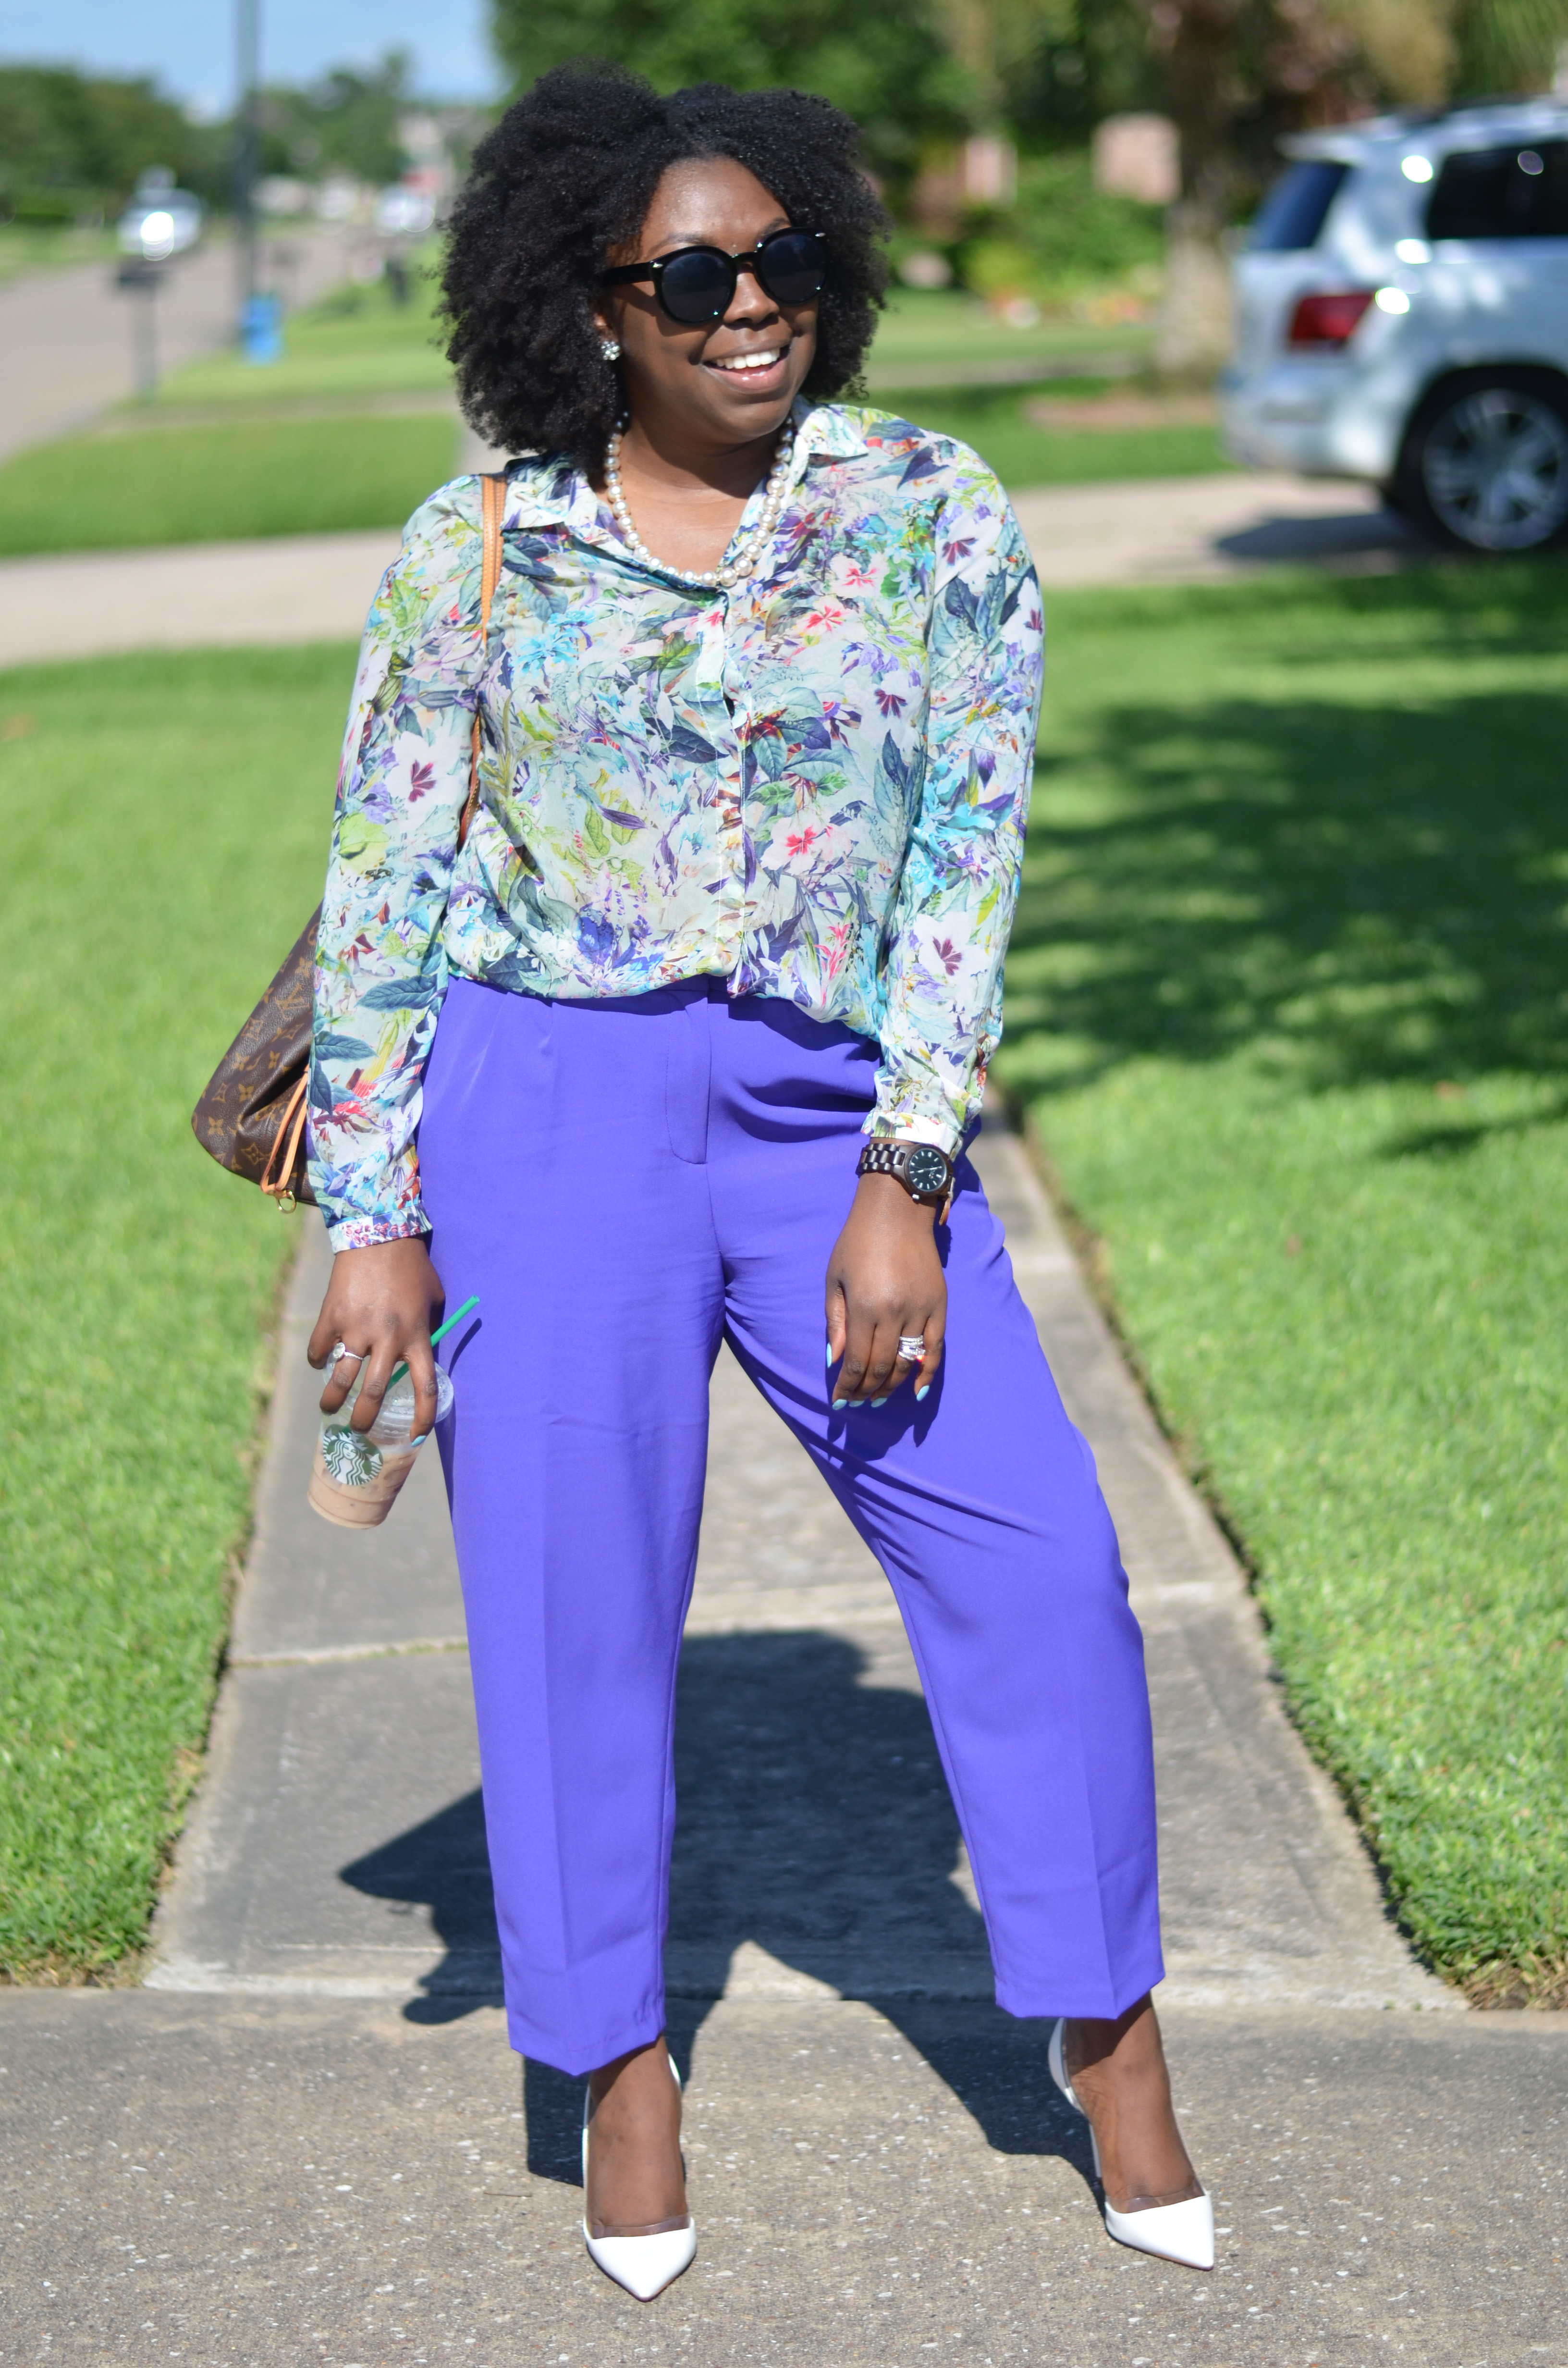 Afro and summer style